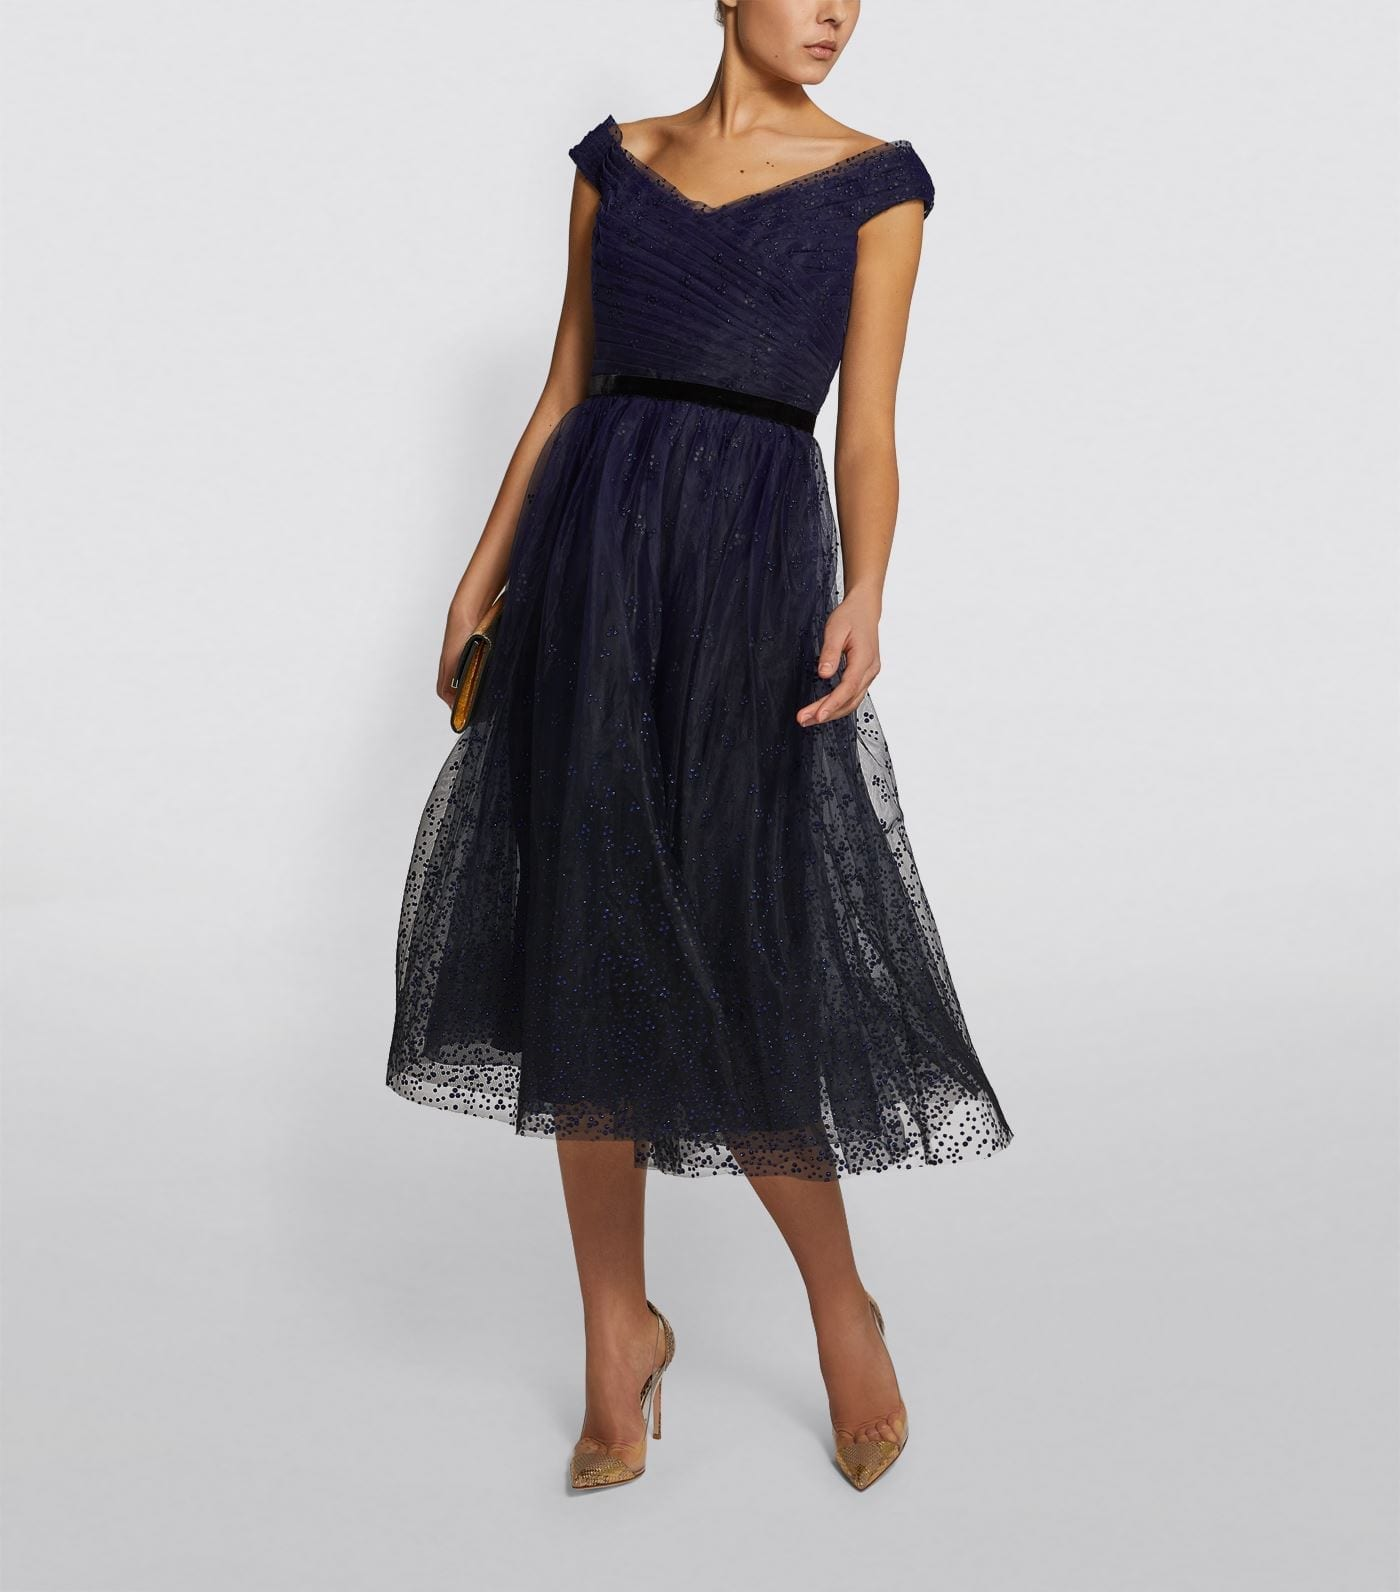 MARCHESA NOTTE Sequin-Embellished Tulle Dress